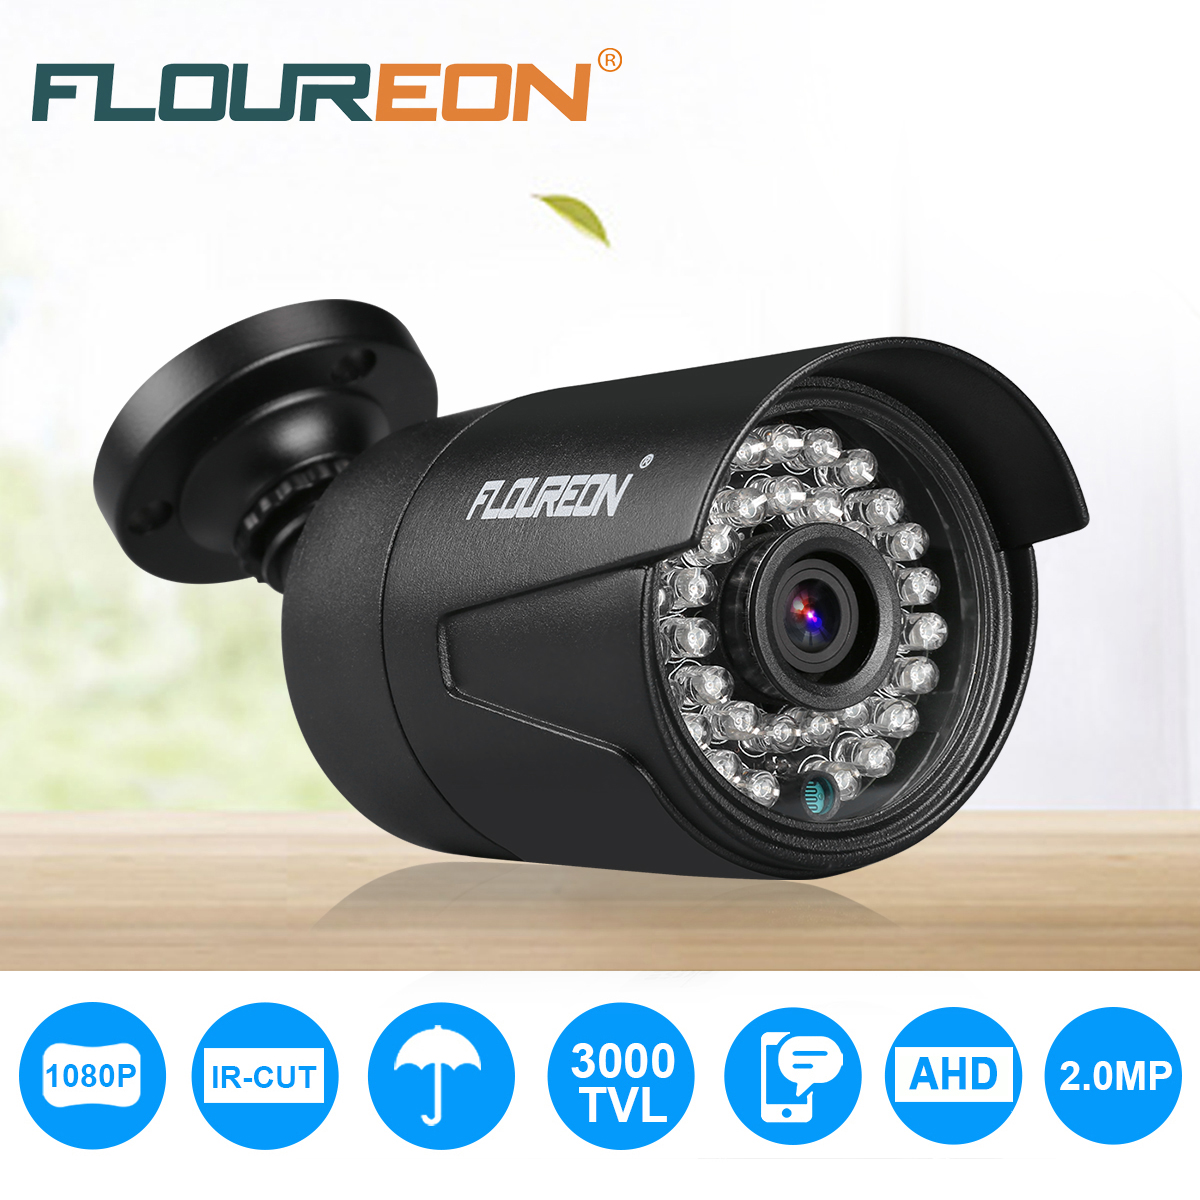 Top Rated Home Security Systems >> FLOUREON AHD 1080P 3000TVL Camera PAL Waterproof Outdoor ...